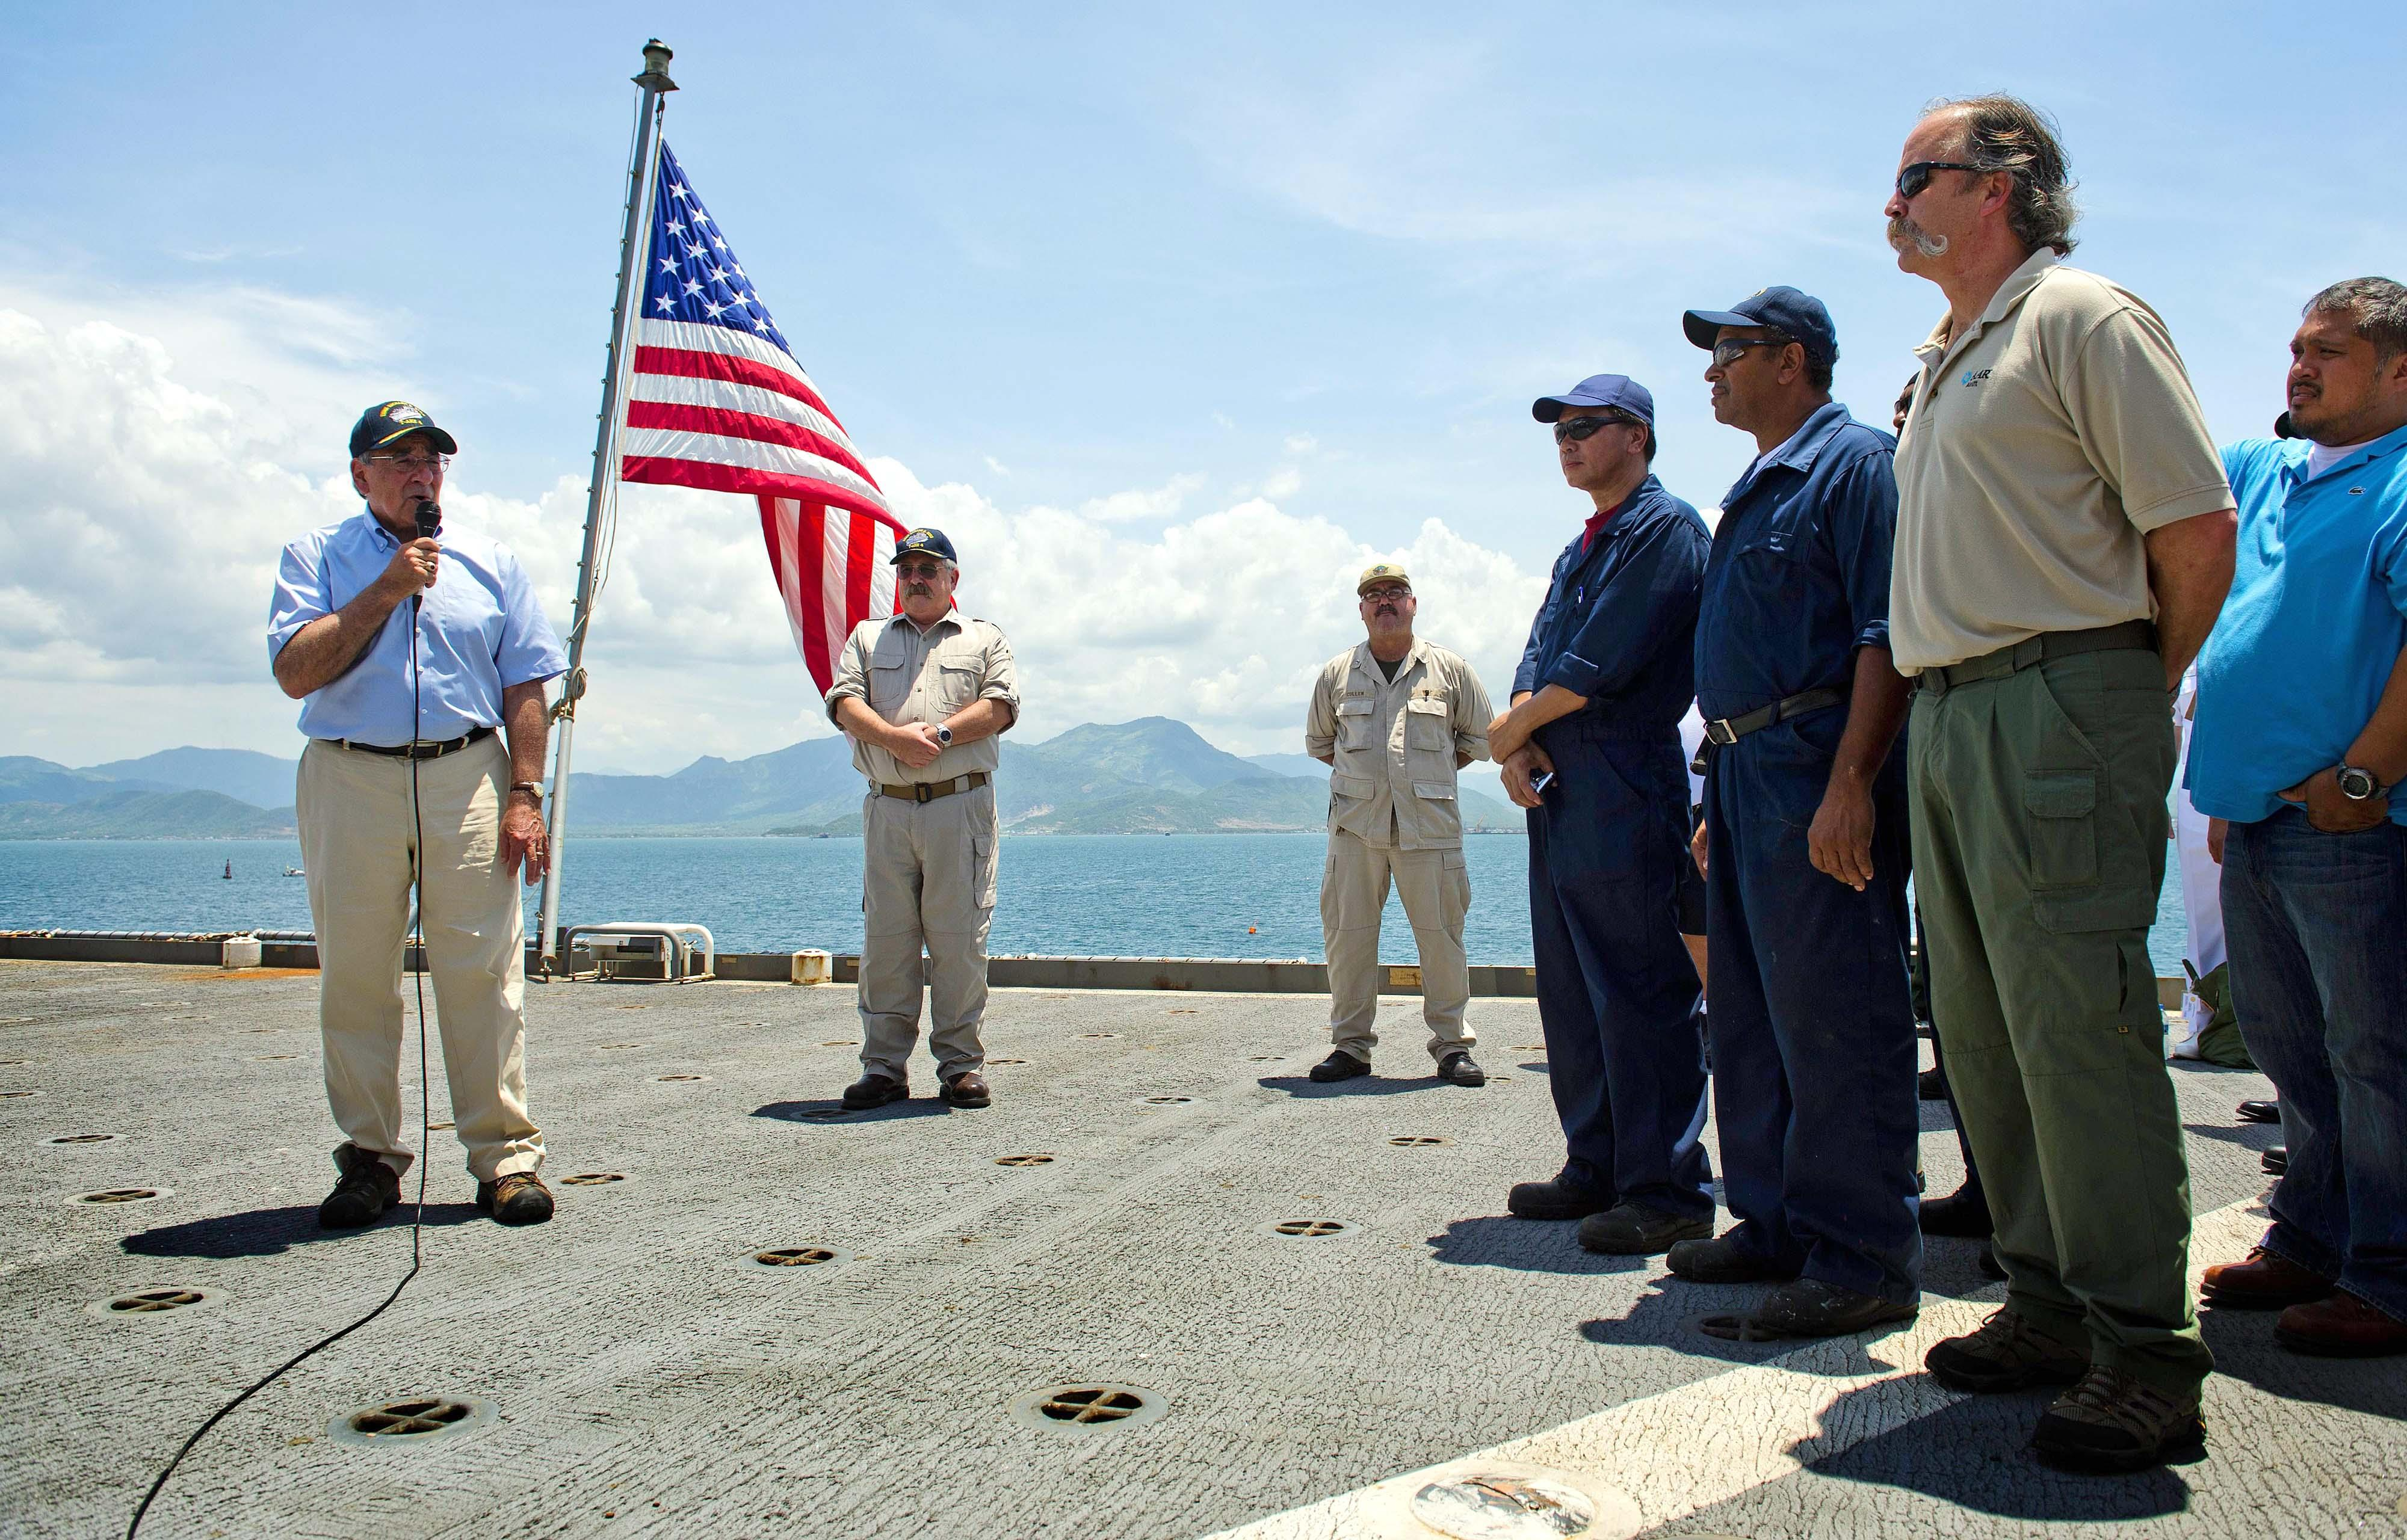 U.S. Secretary of Defense Leon Panetta, left, speaks to members of the crew as he visits USNS Richard E. Byrd in Cam Ranh Bay, Vietnam, June 3, 2012. Panetta toured the former U.S. air and naval base in the bay, becoming the most senior American official to go there since the war ended. (AP Photo/Jim Watson, Pool)